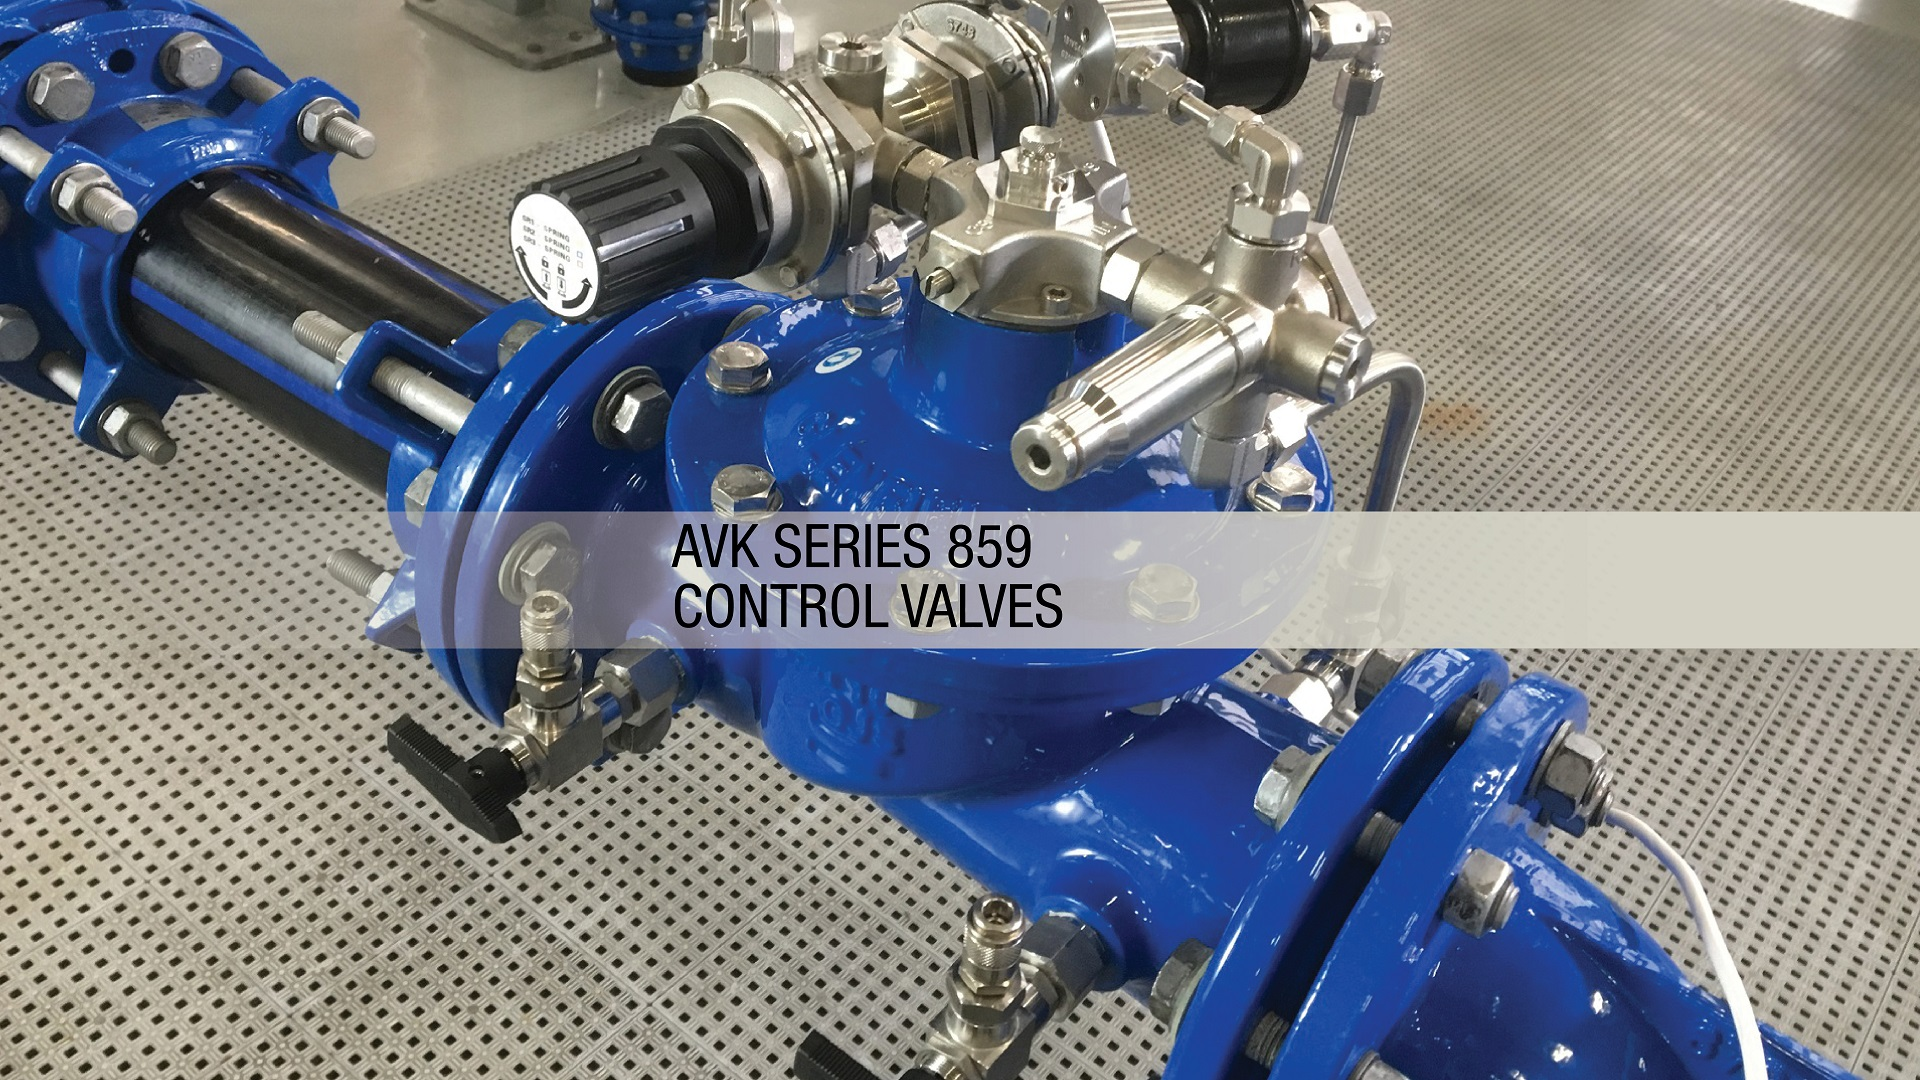 AVK Series 859 Control and Pressure Reducing Valves